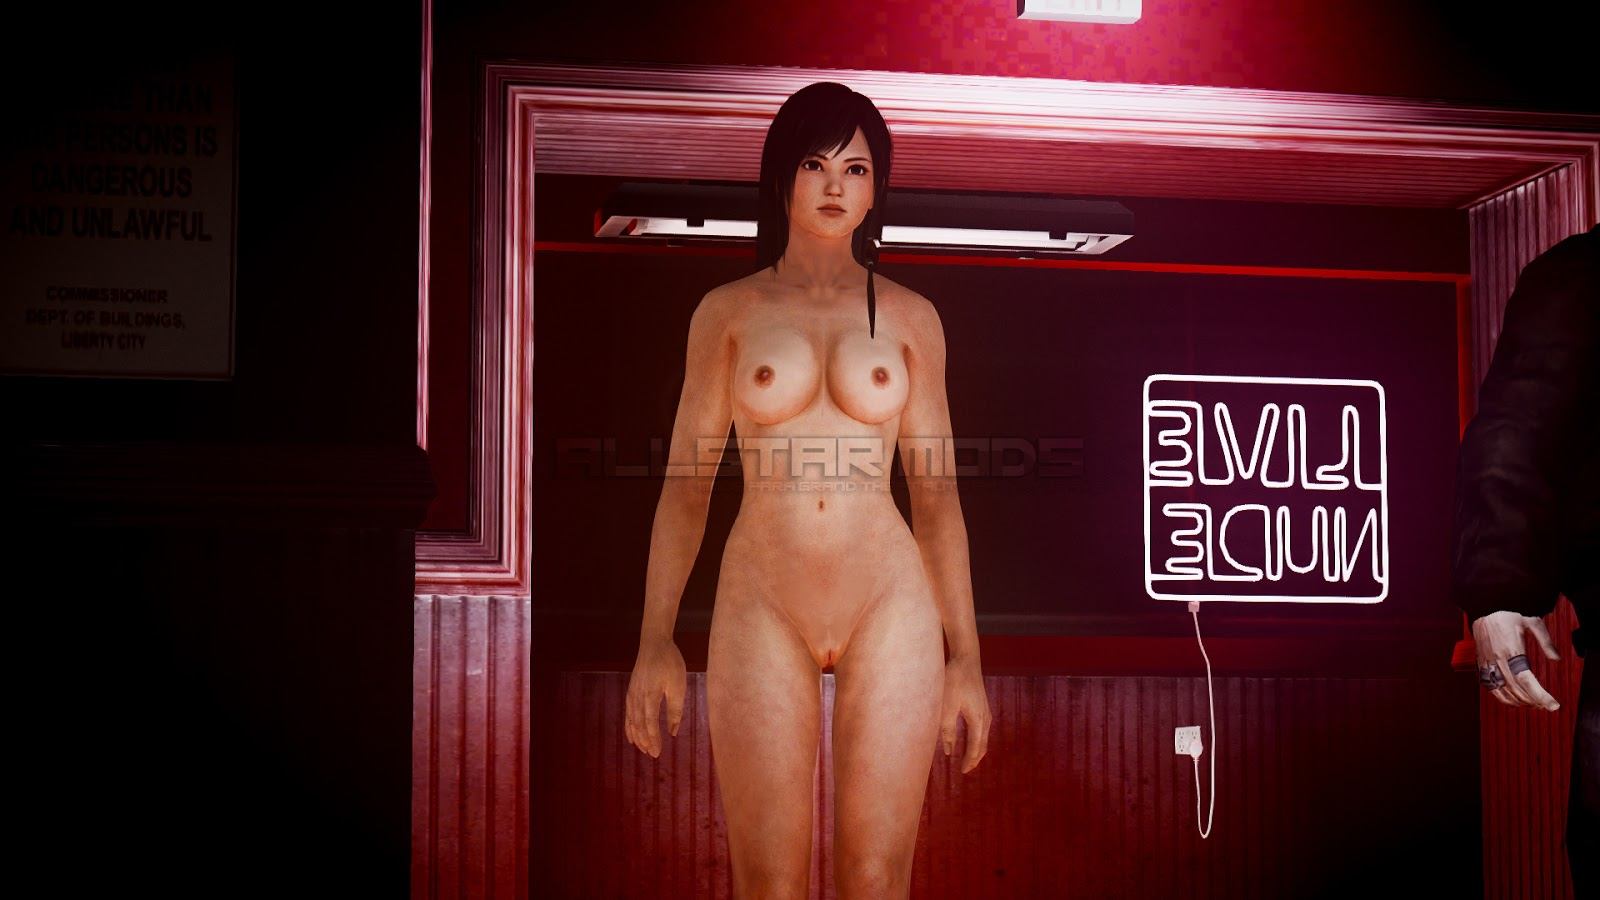 hot nude girl from gta iv